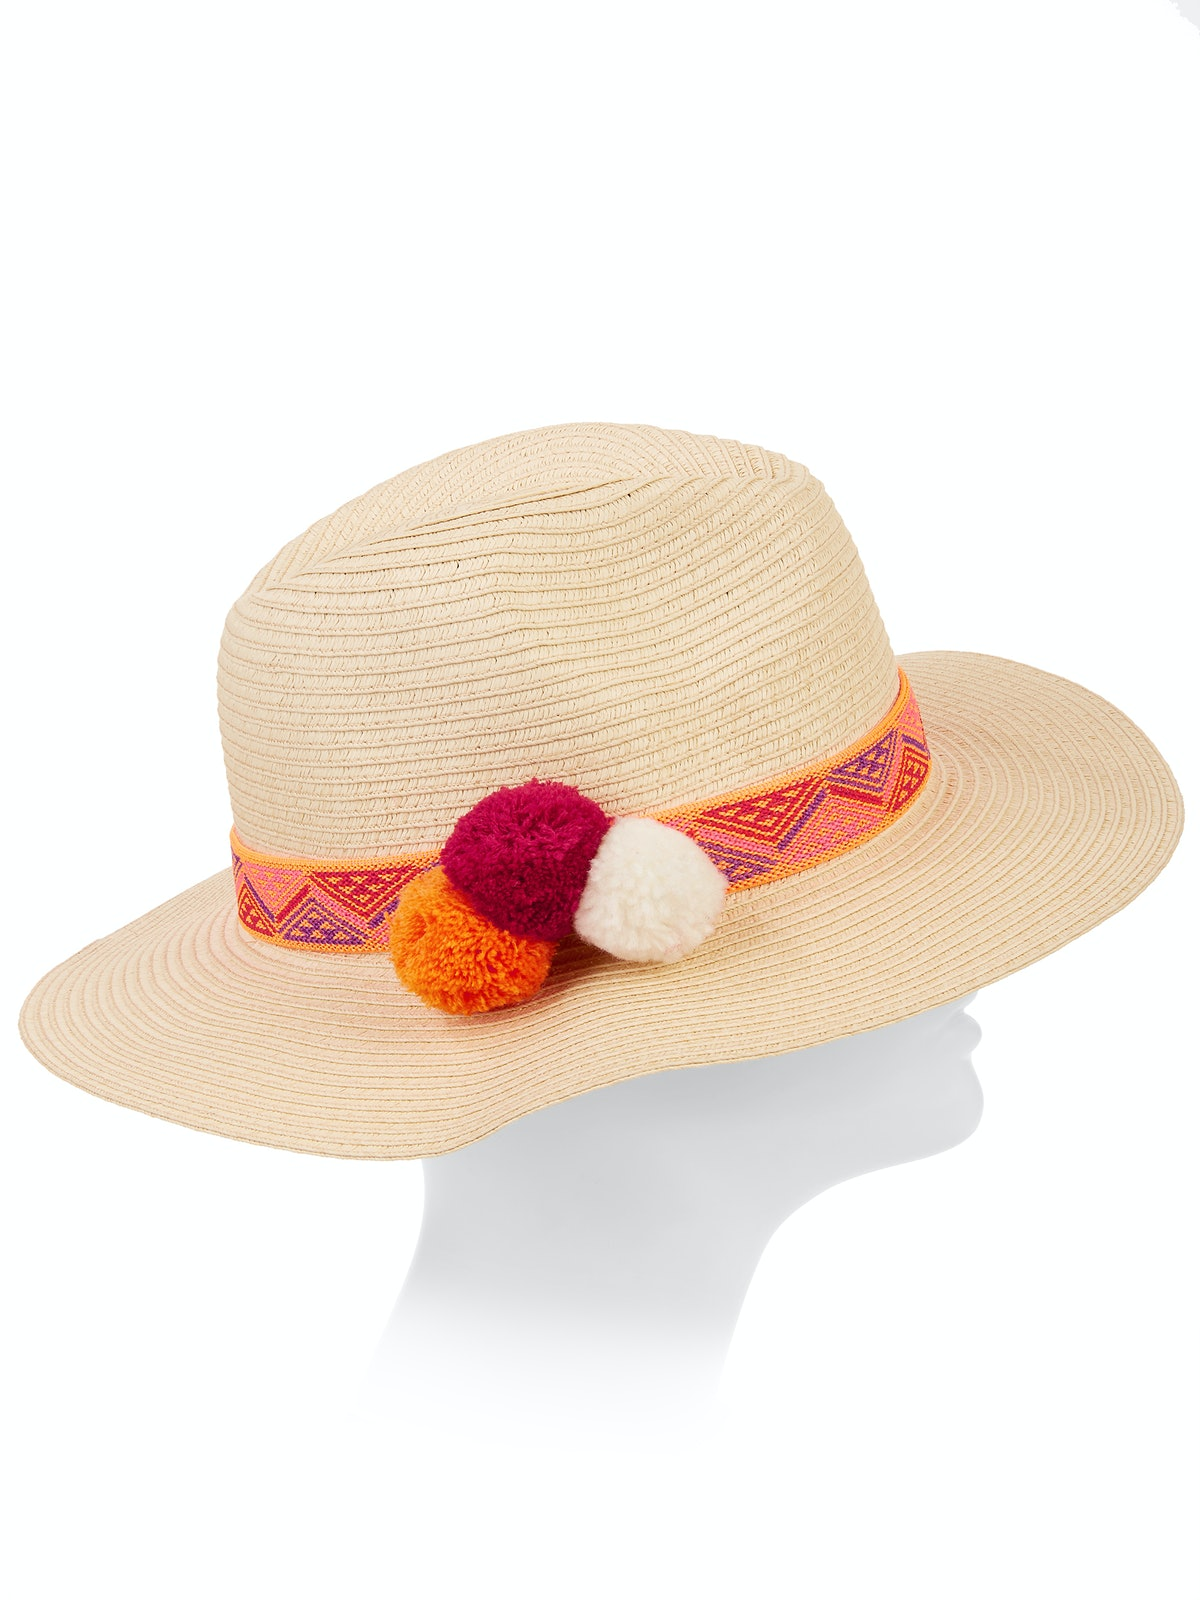 Eliza May Rose Women's Contrast Color Straw Fedora